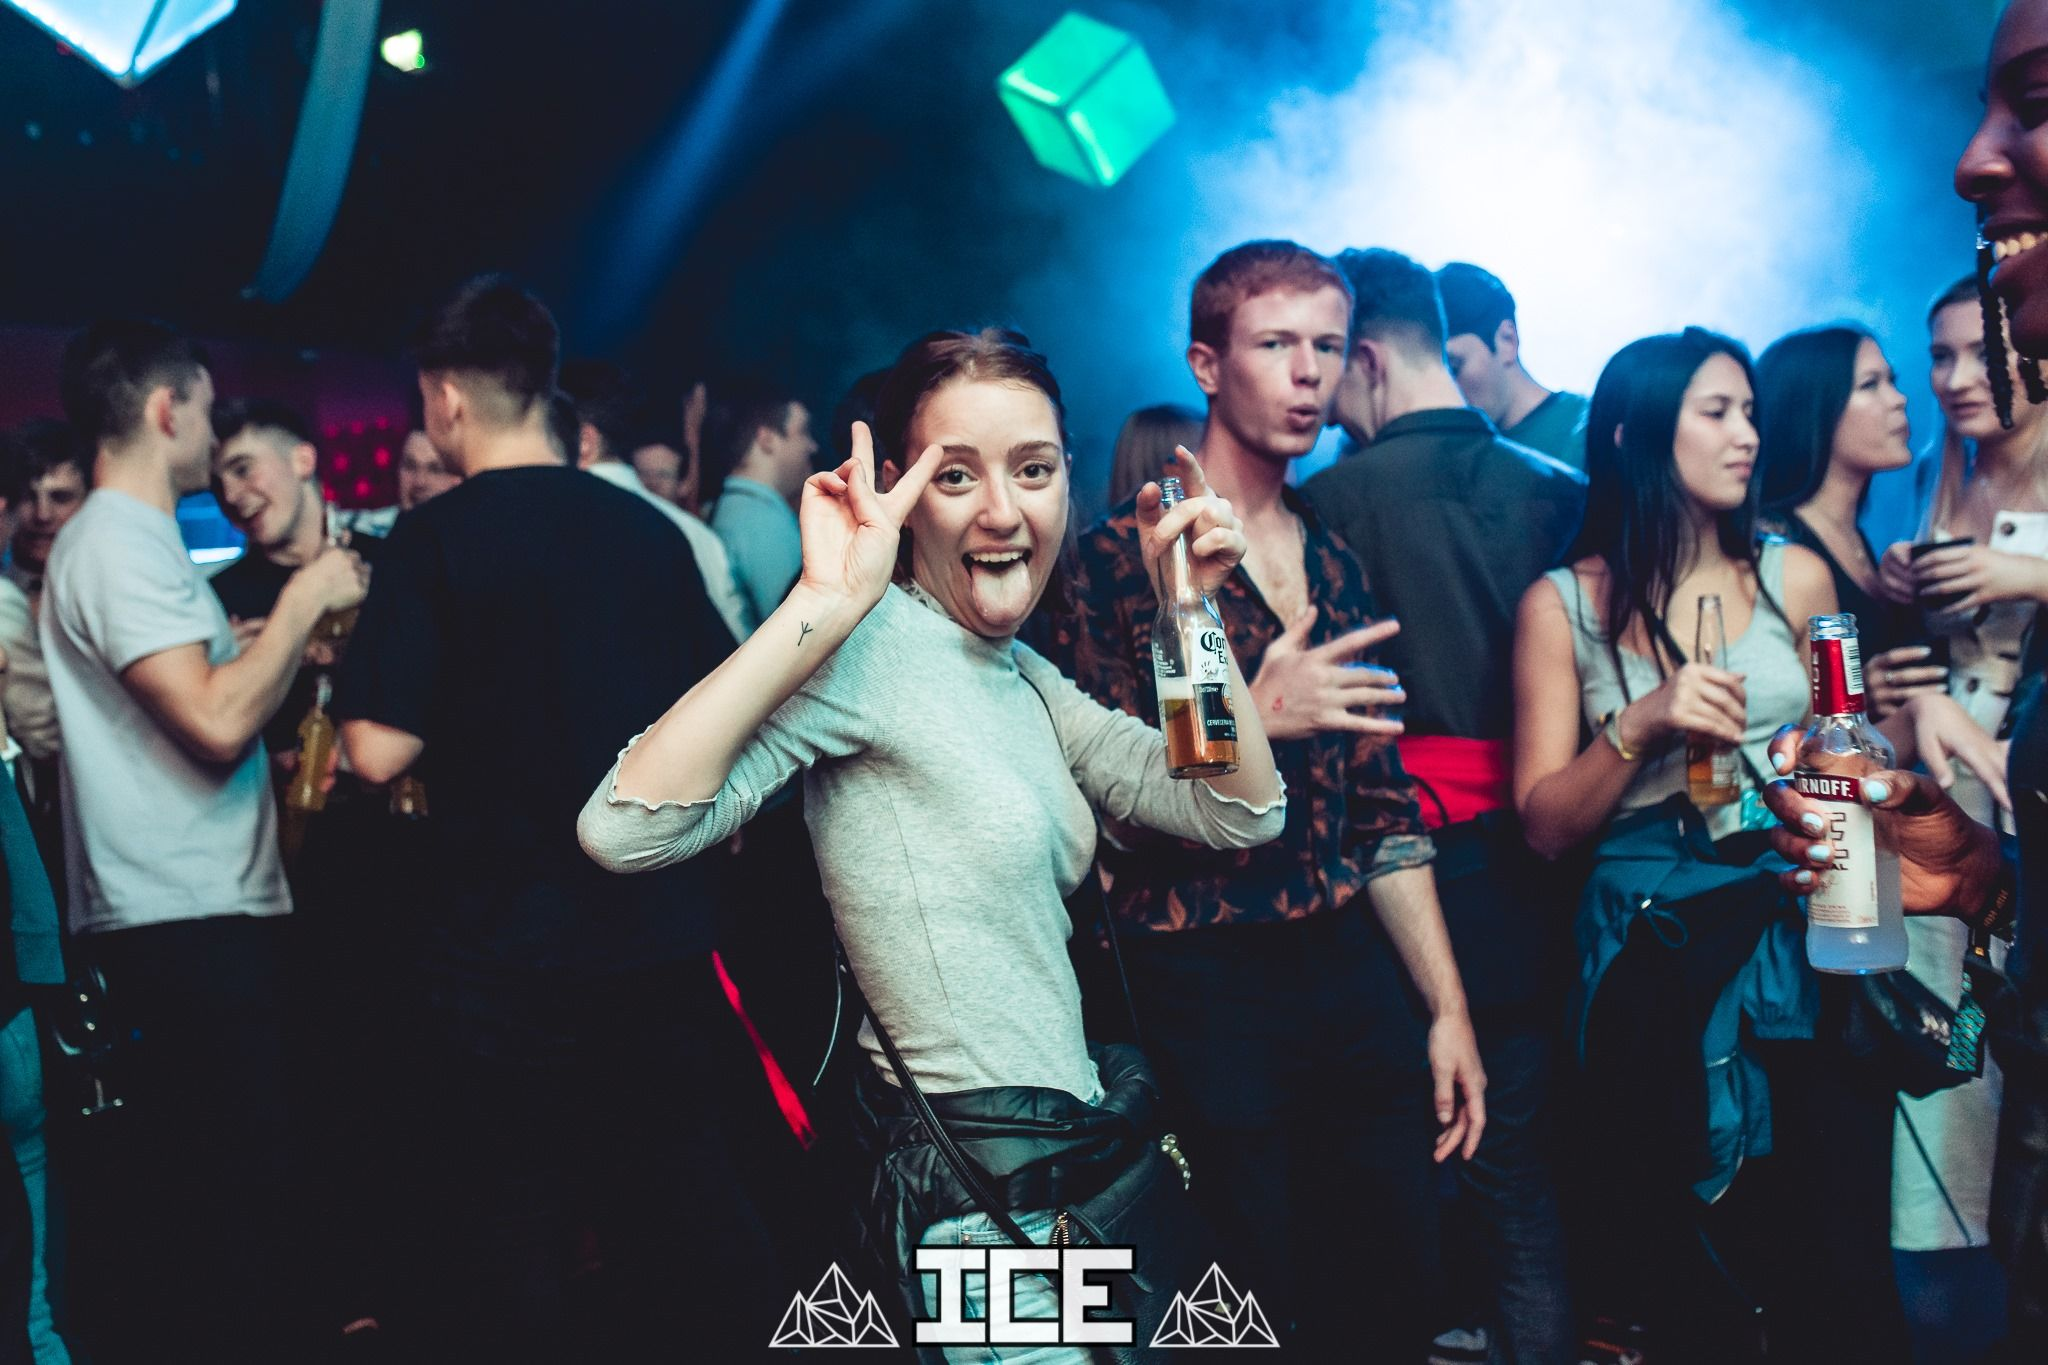 Image may contain: Disco, Night Club, Club, Party, Human, Person